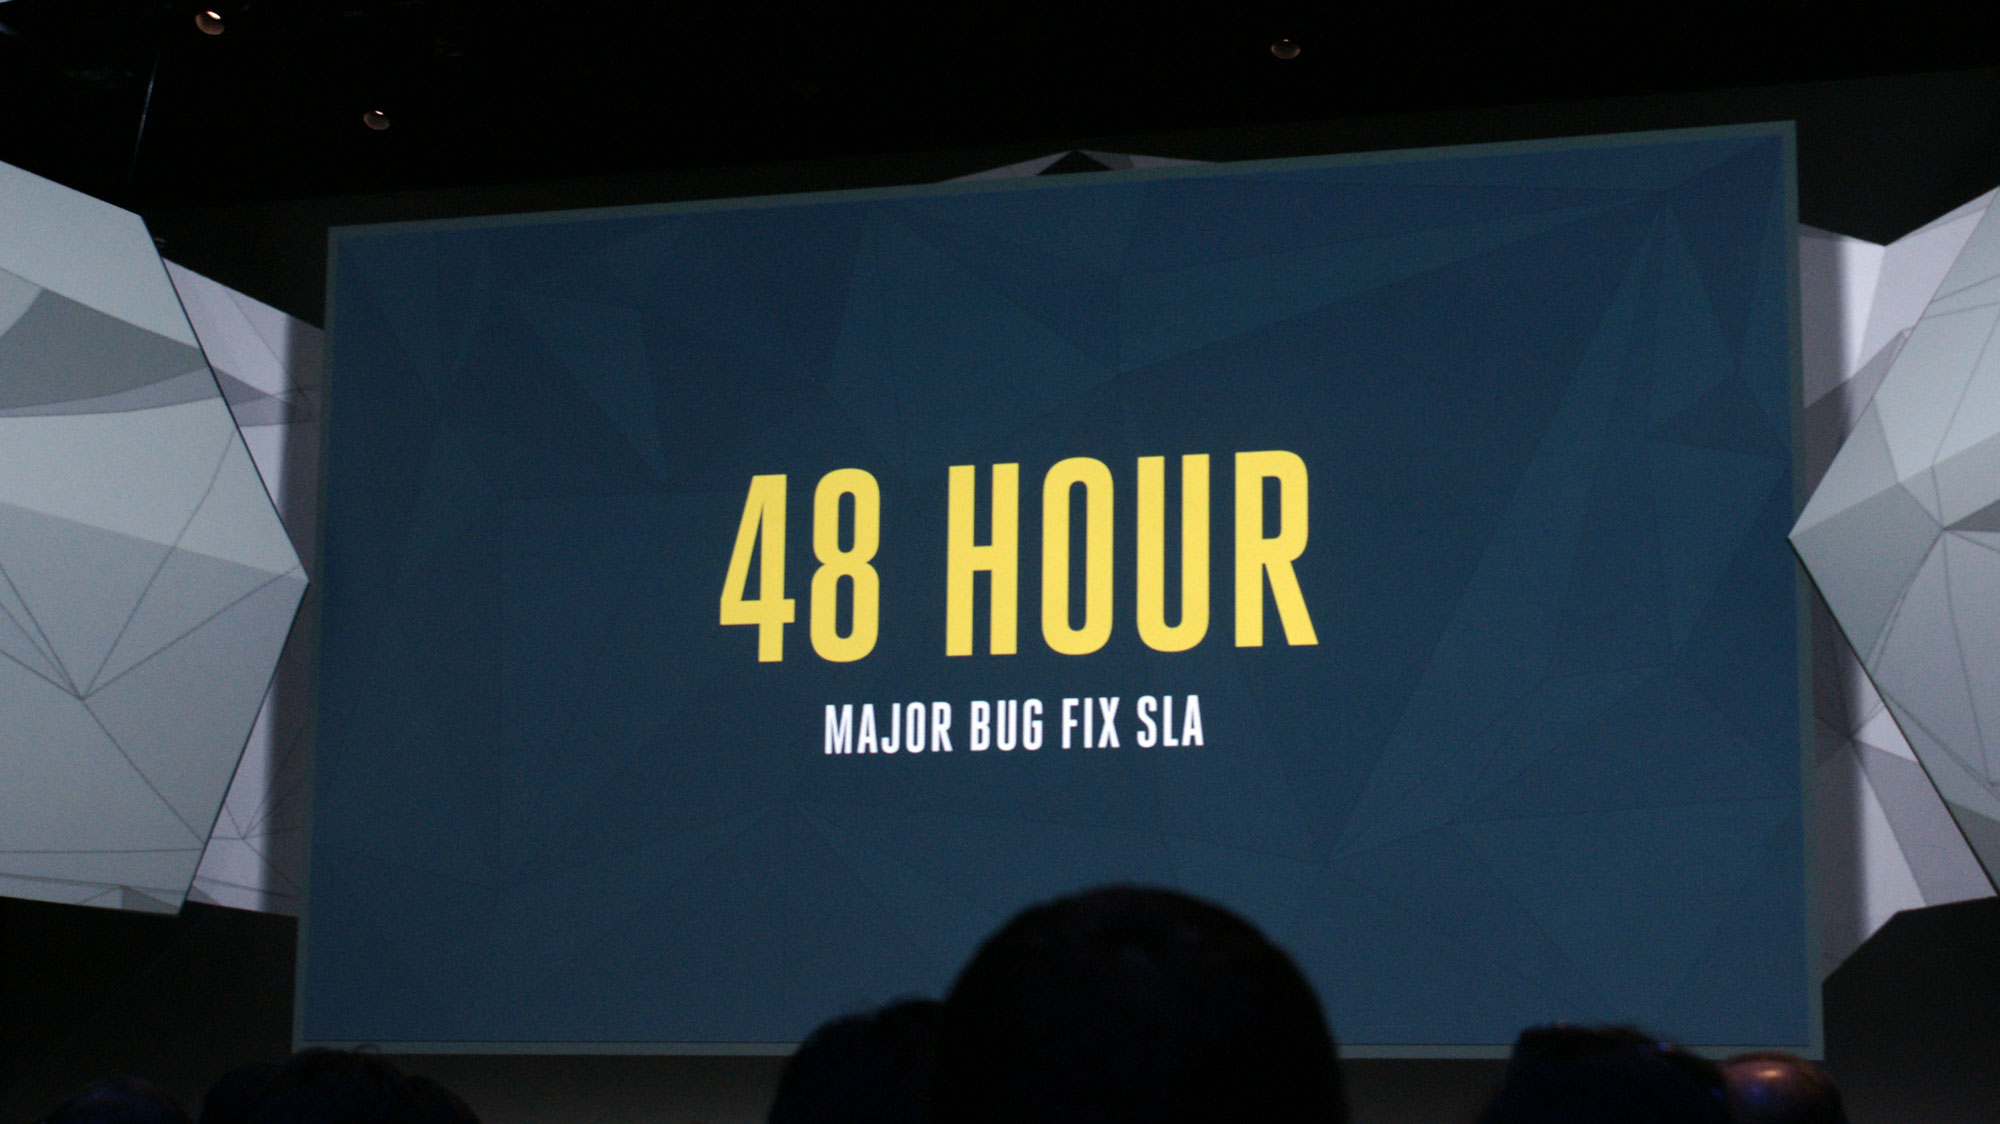 0430 48hour 2 Facebook announces two year stability guarantee for core APIs, SLA to fix all major bugs within 48 hours